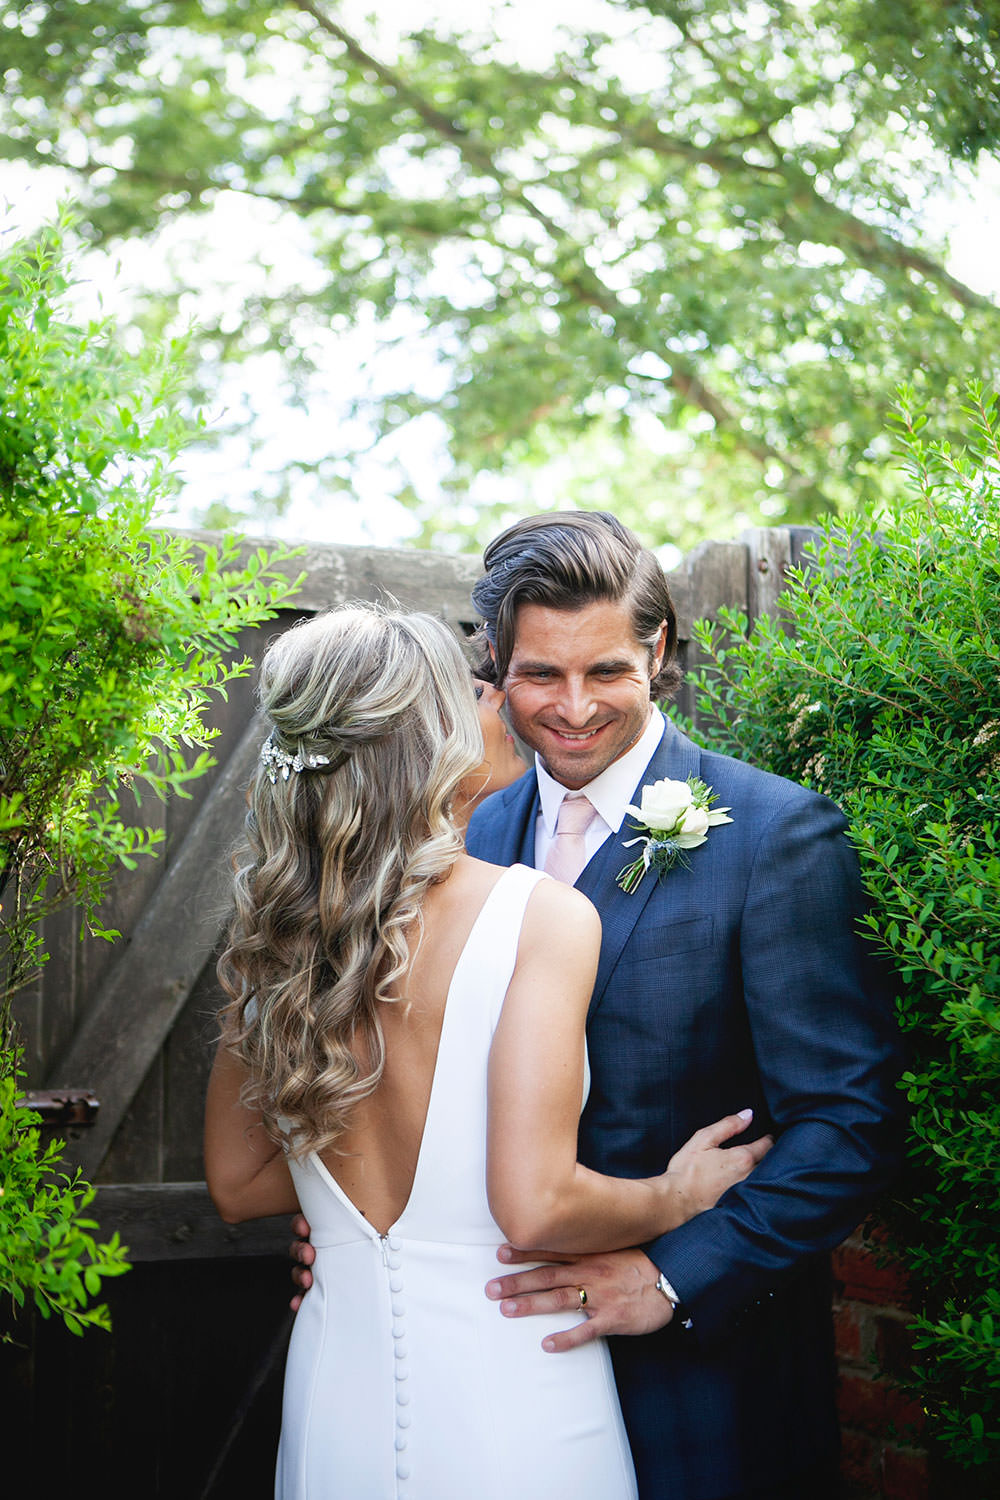 Bride bridal Fitted Fishtail Dress Gown Checked Suit Groom Button V Back Countryside Barn Wedding Katrina Matthews Photography